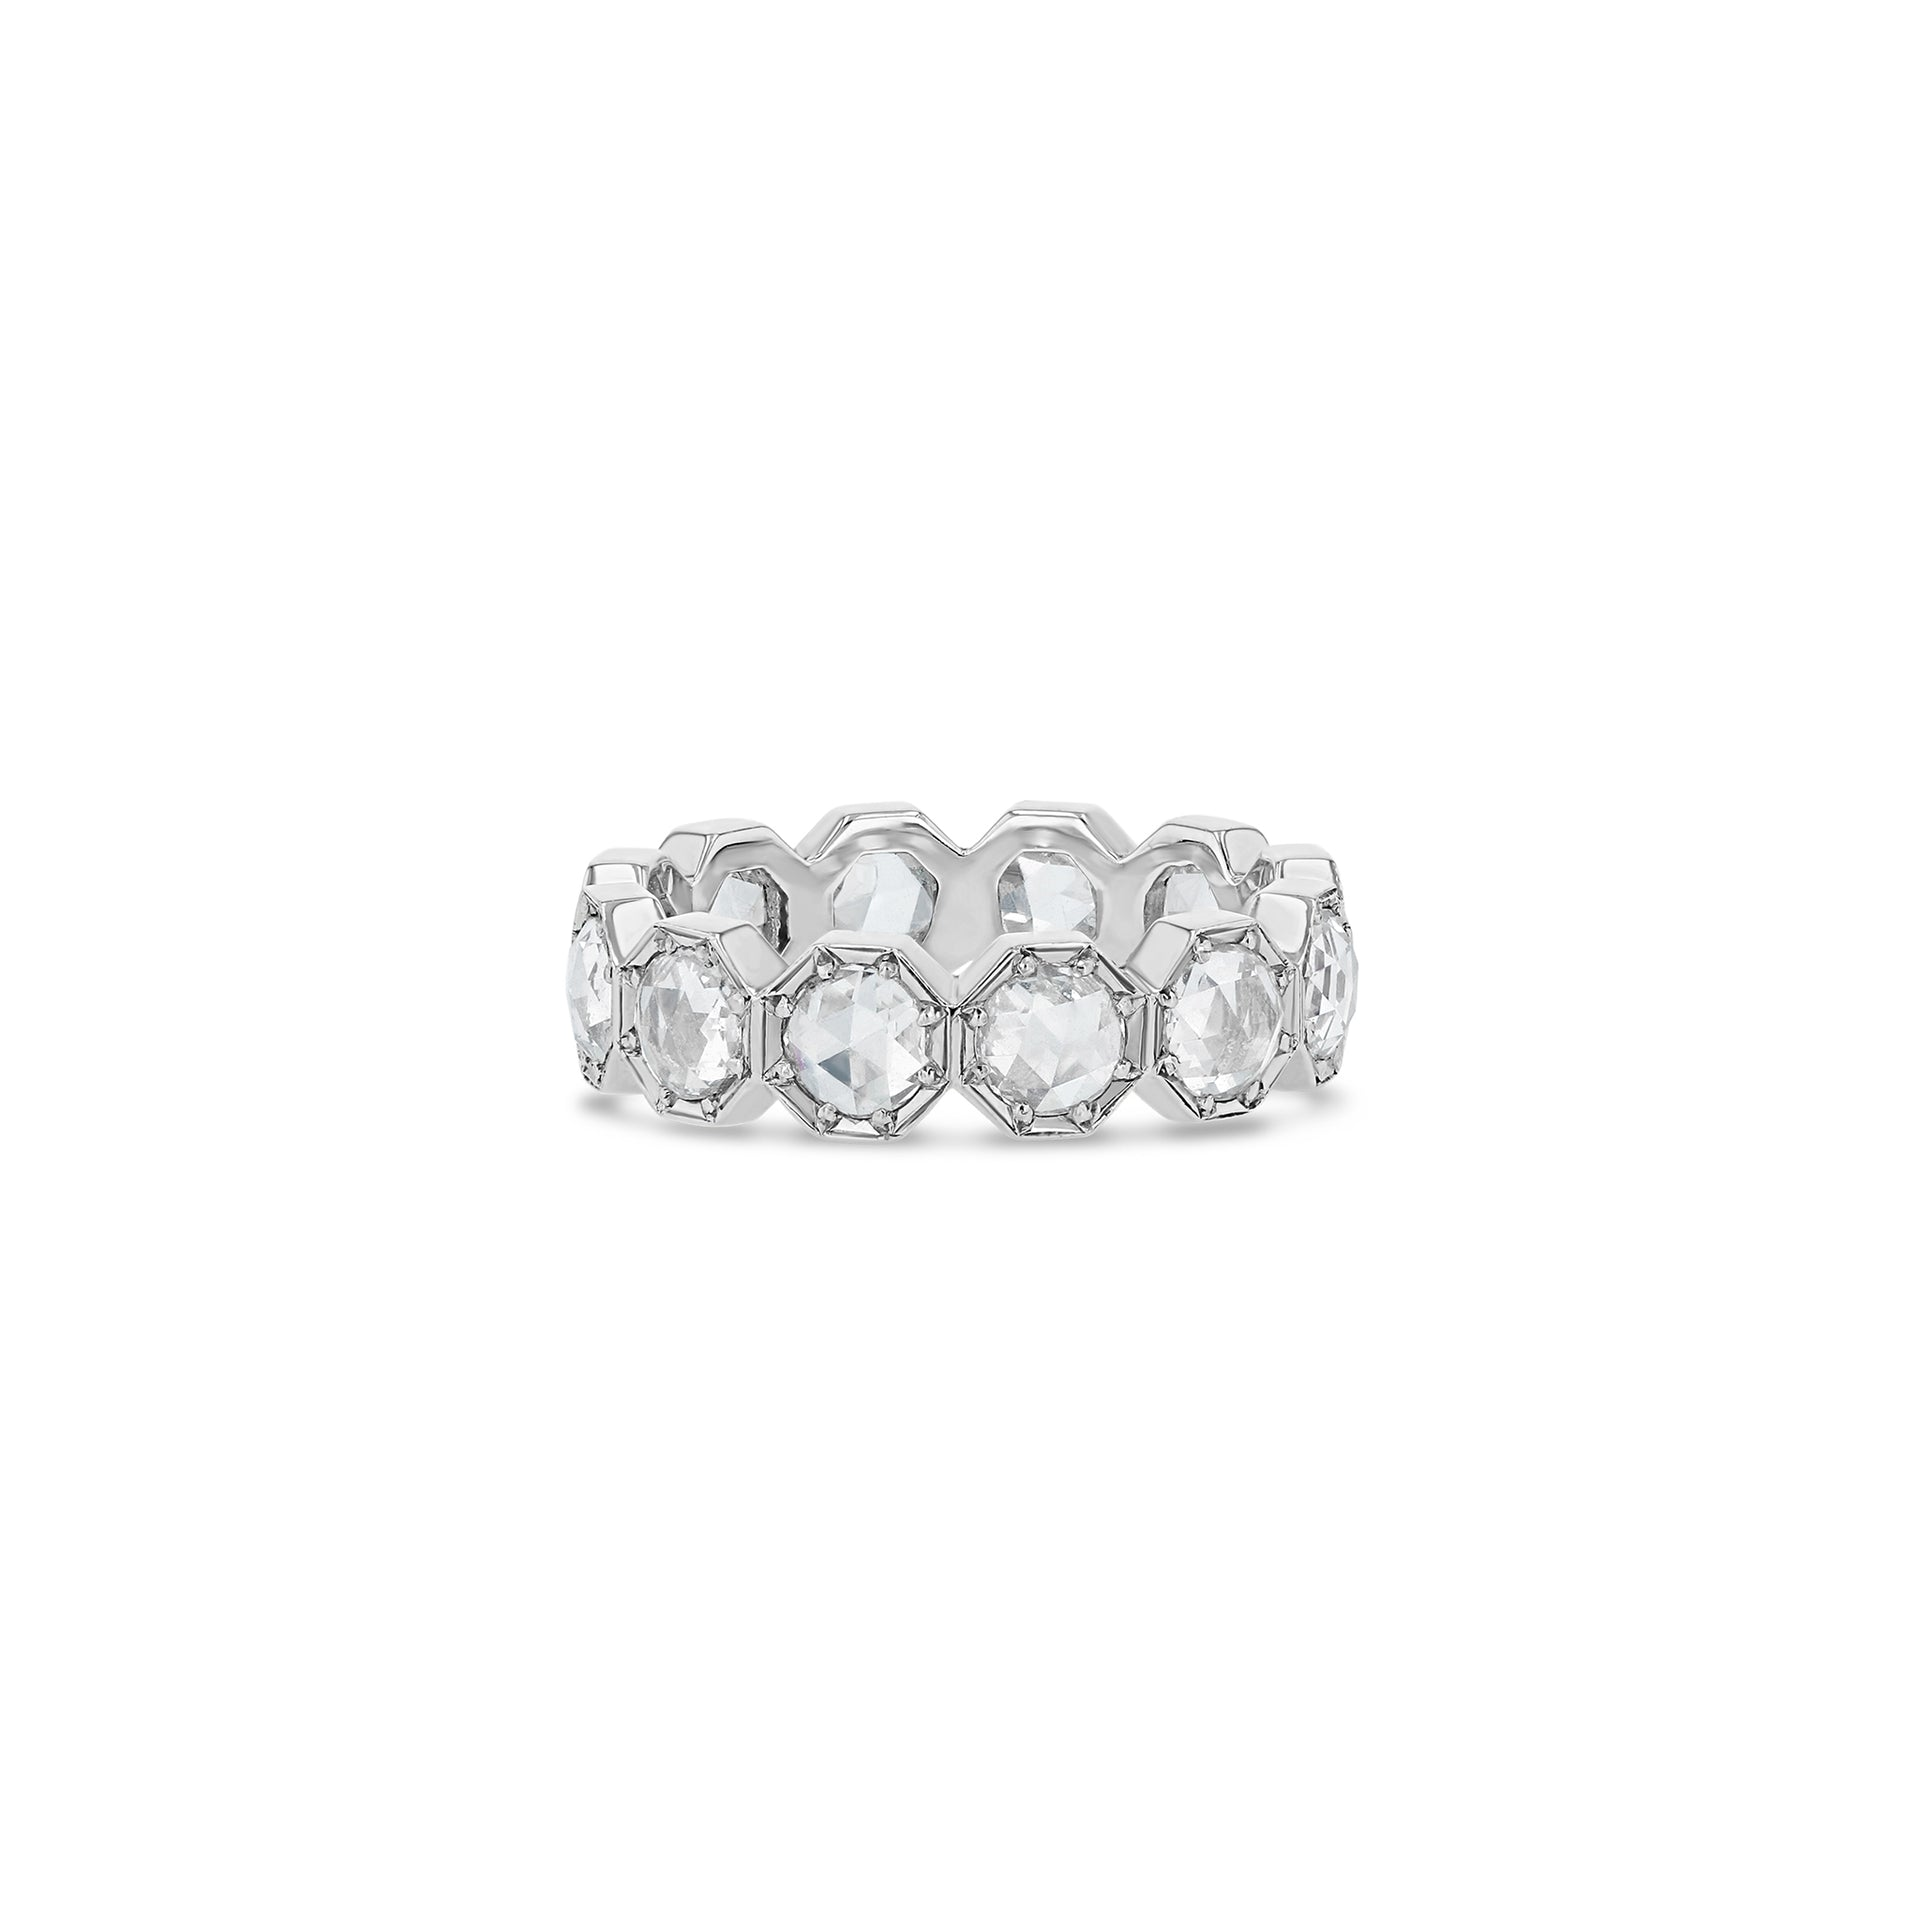 4mm Crown Bezel Diamond Eternity Ring